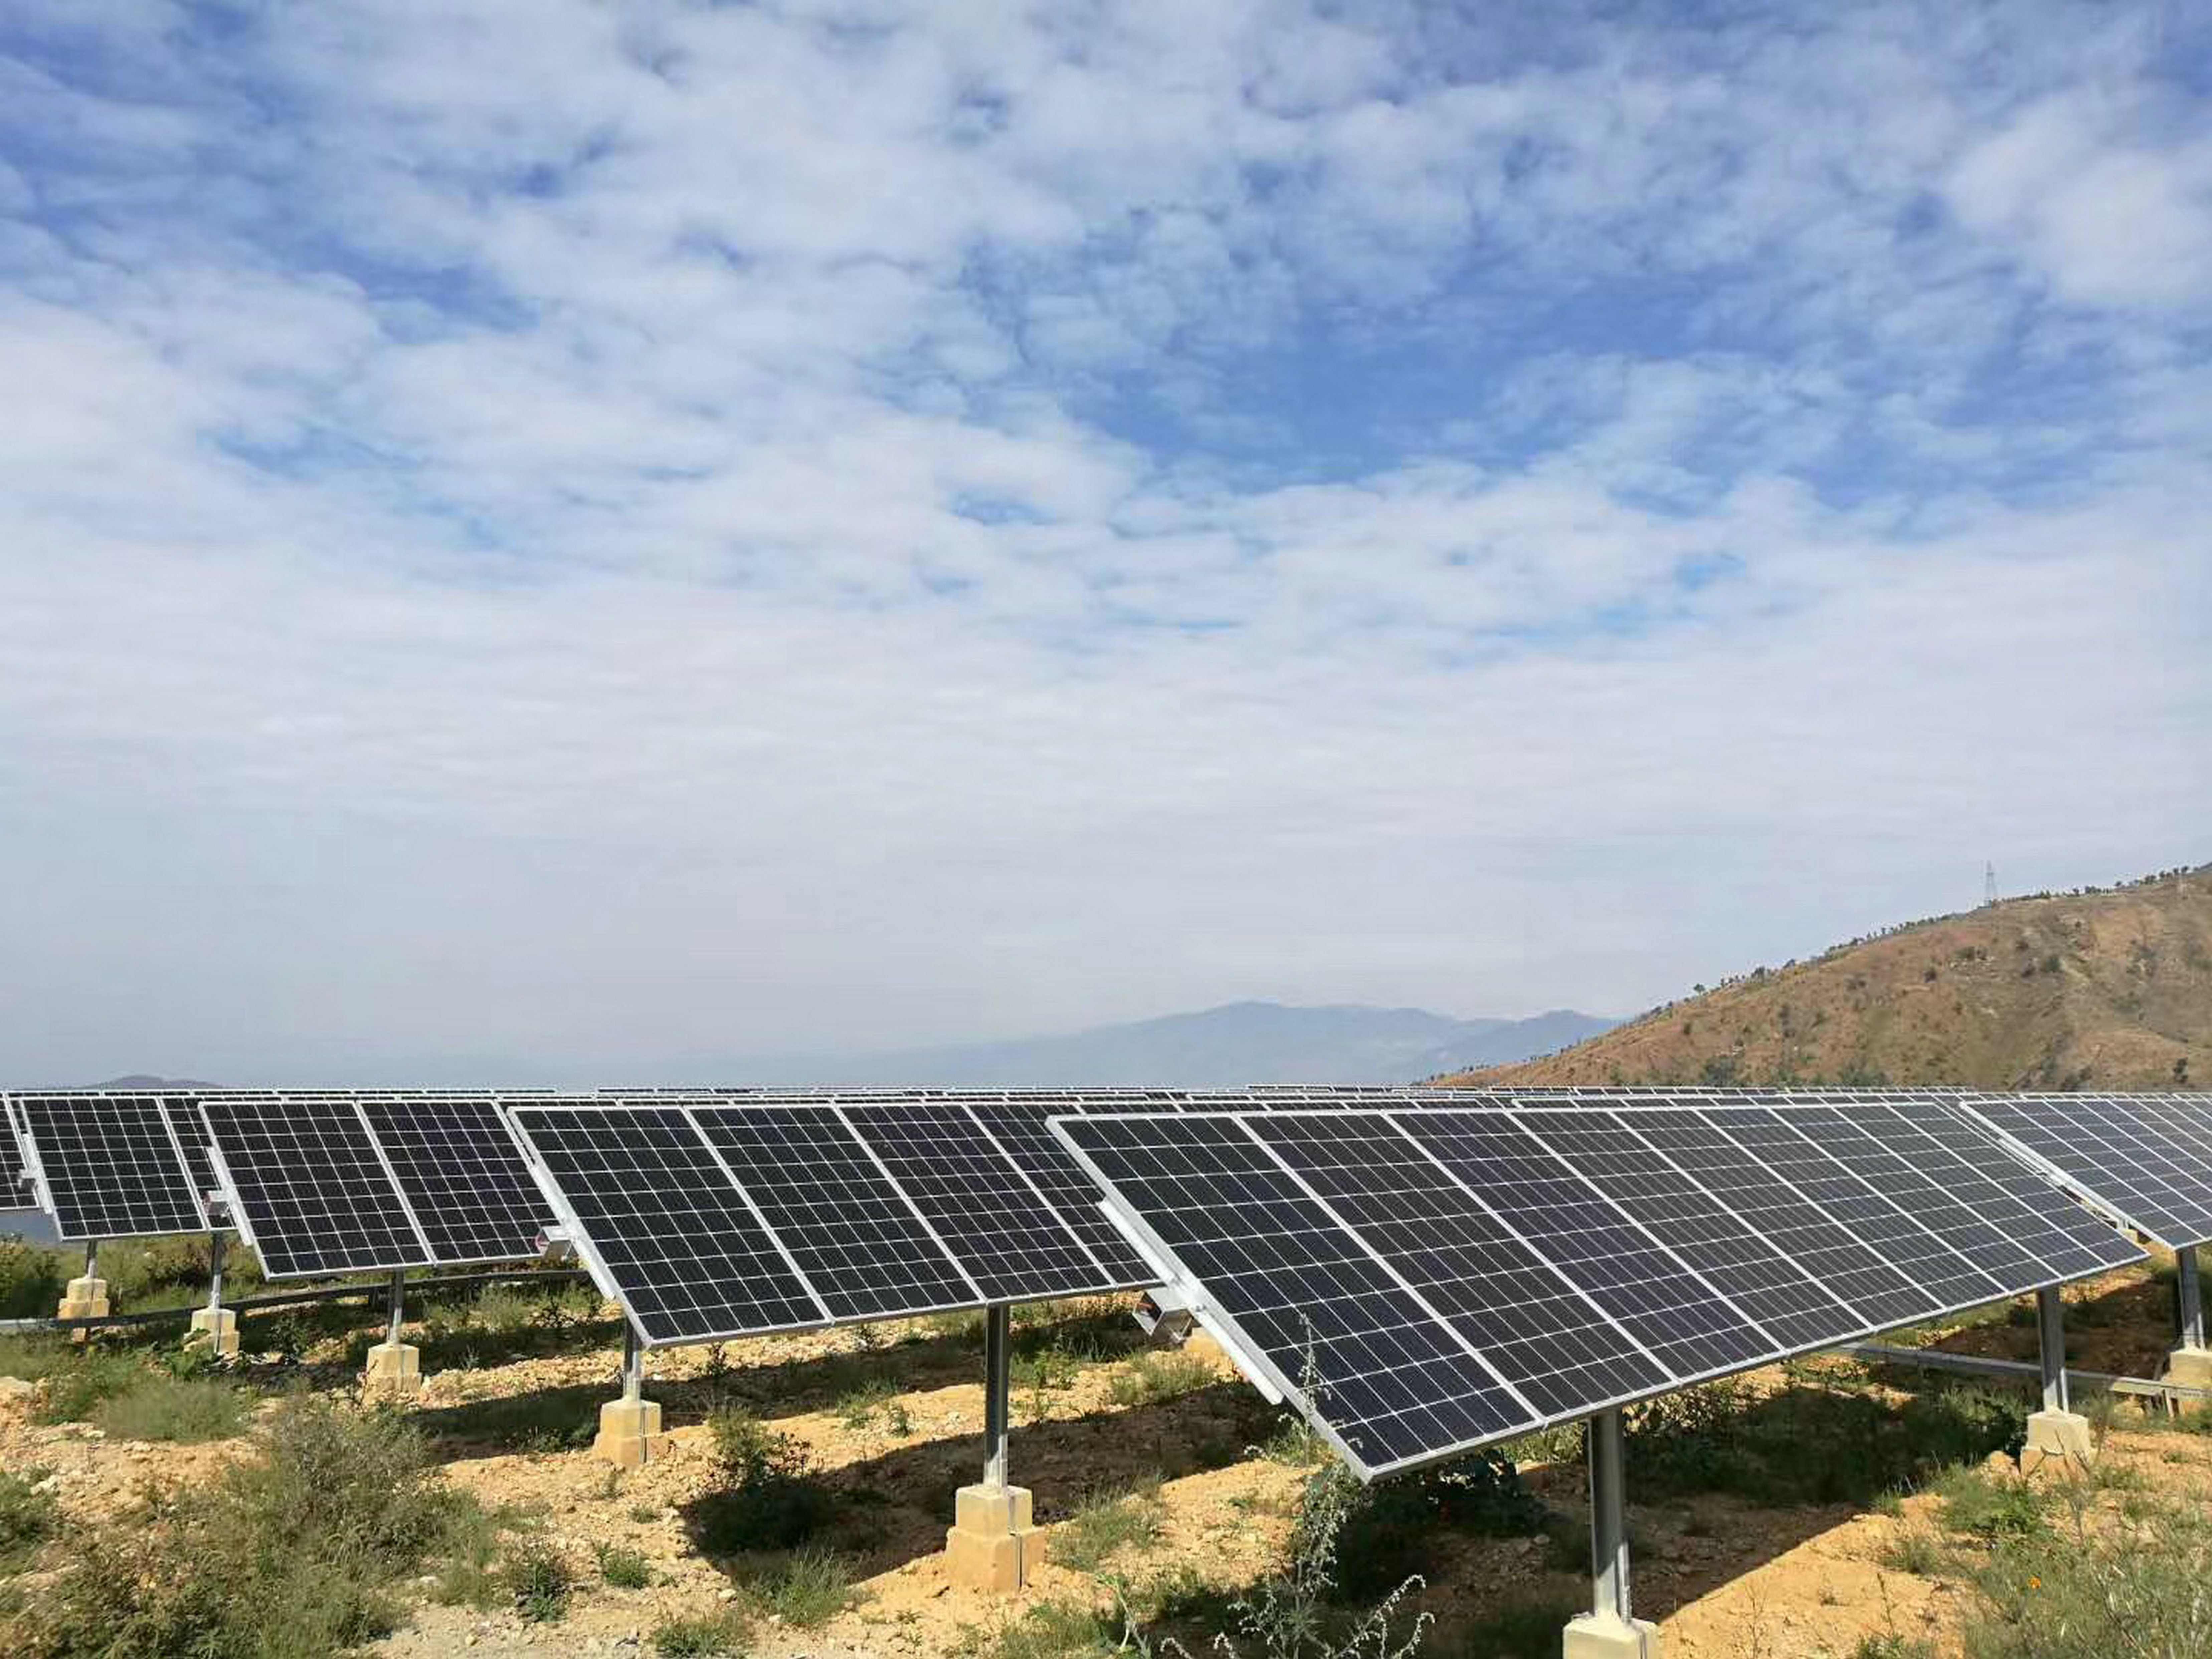 US INTERNATIONAL TRADE COMMISSION Offer Three Proposals to Limit Importing Solar Products